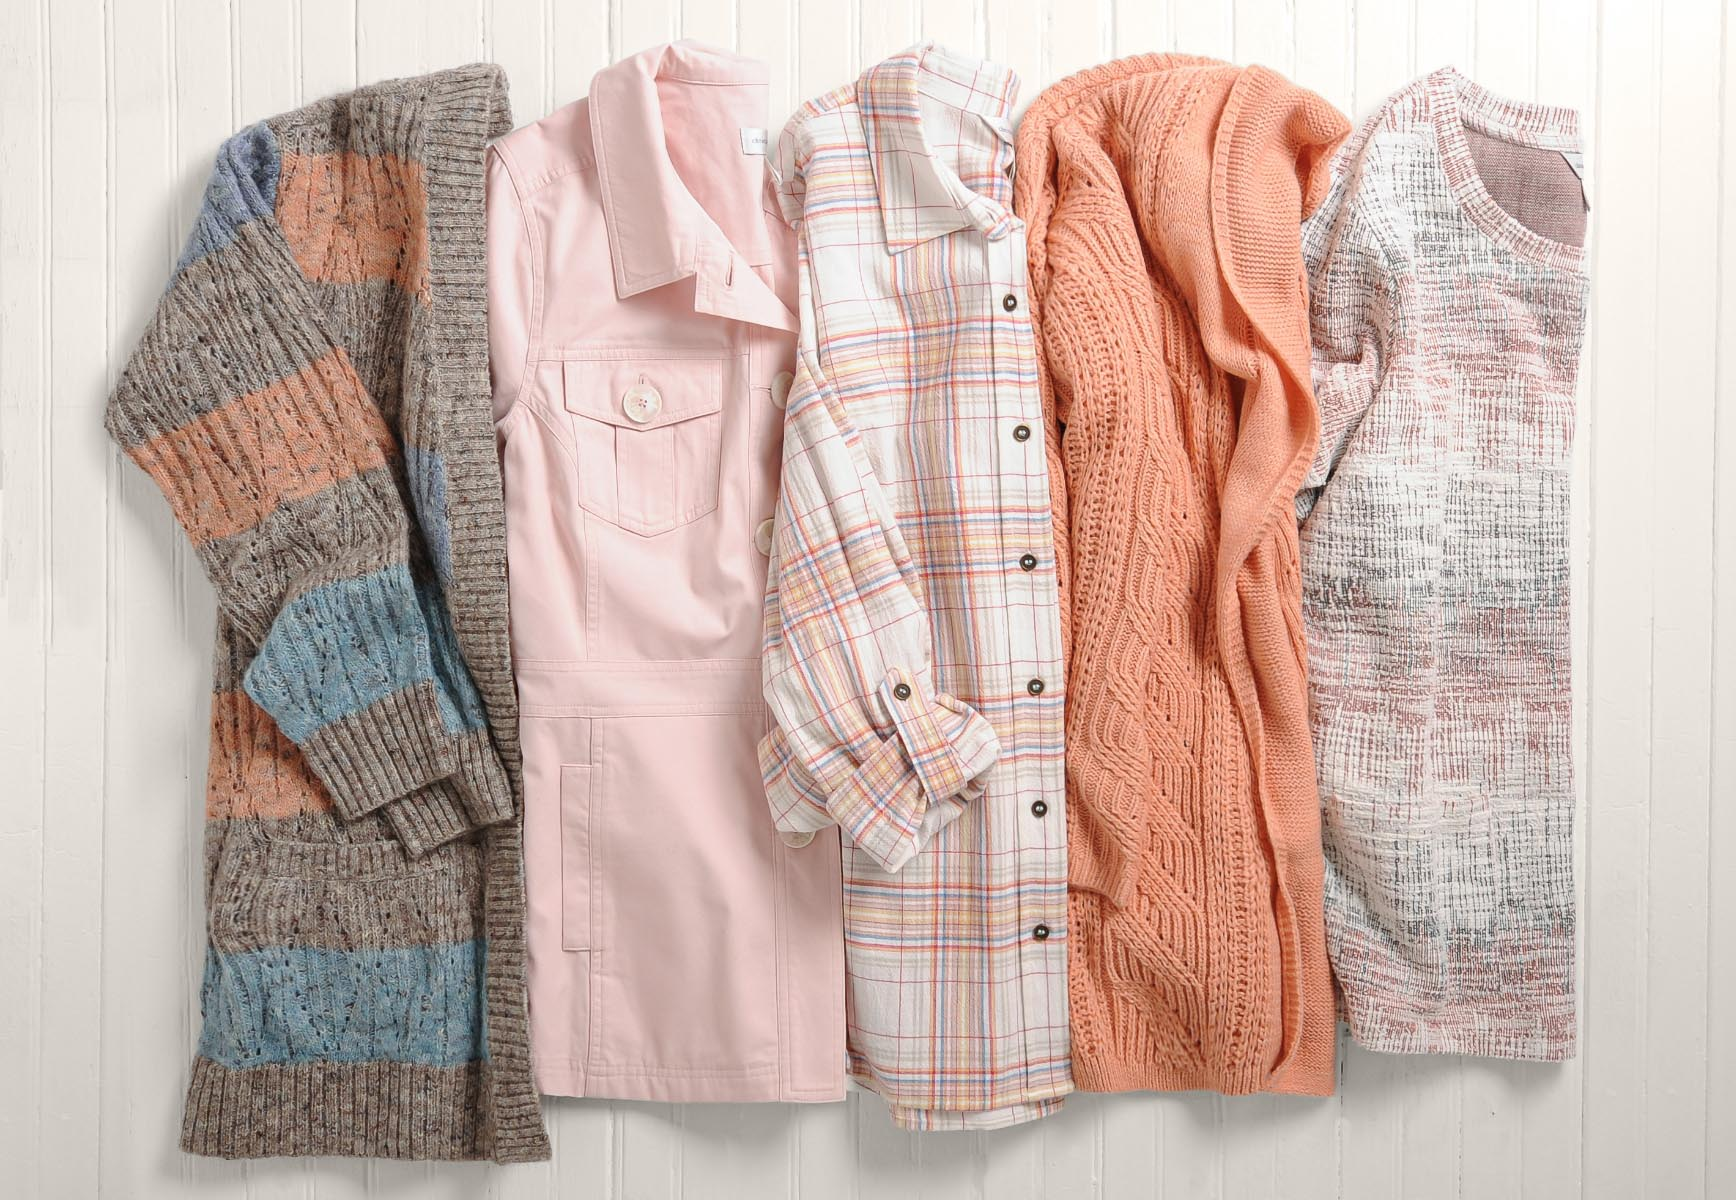 Christopher & Banks Tops and Sweaters.